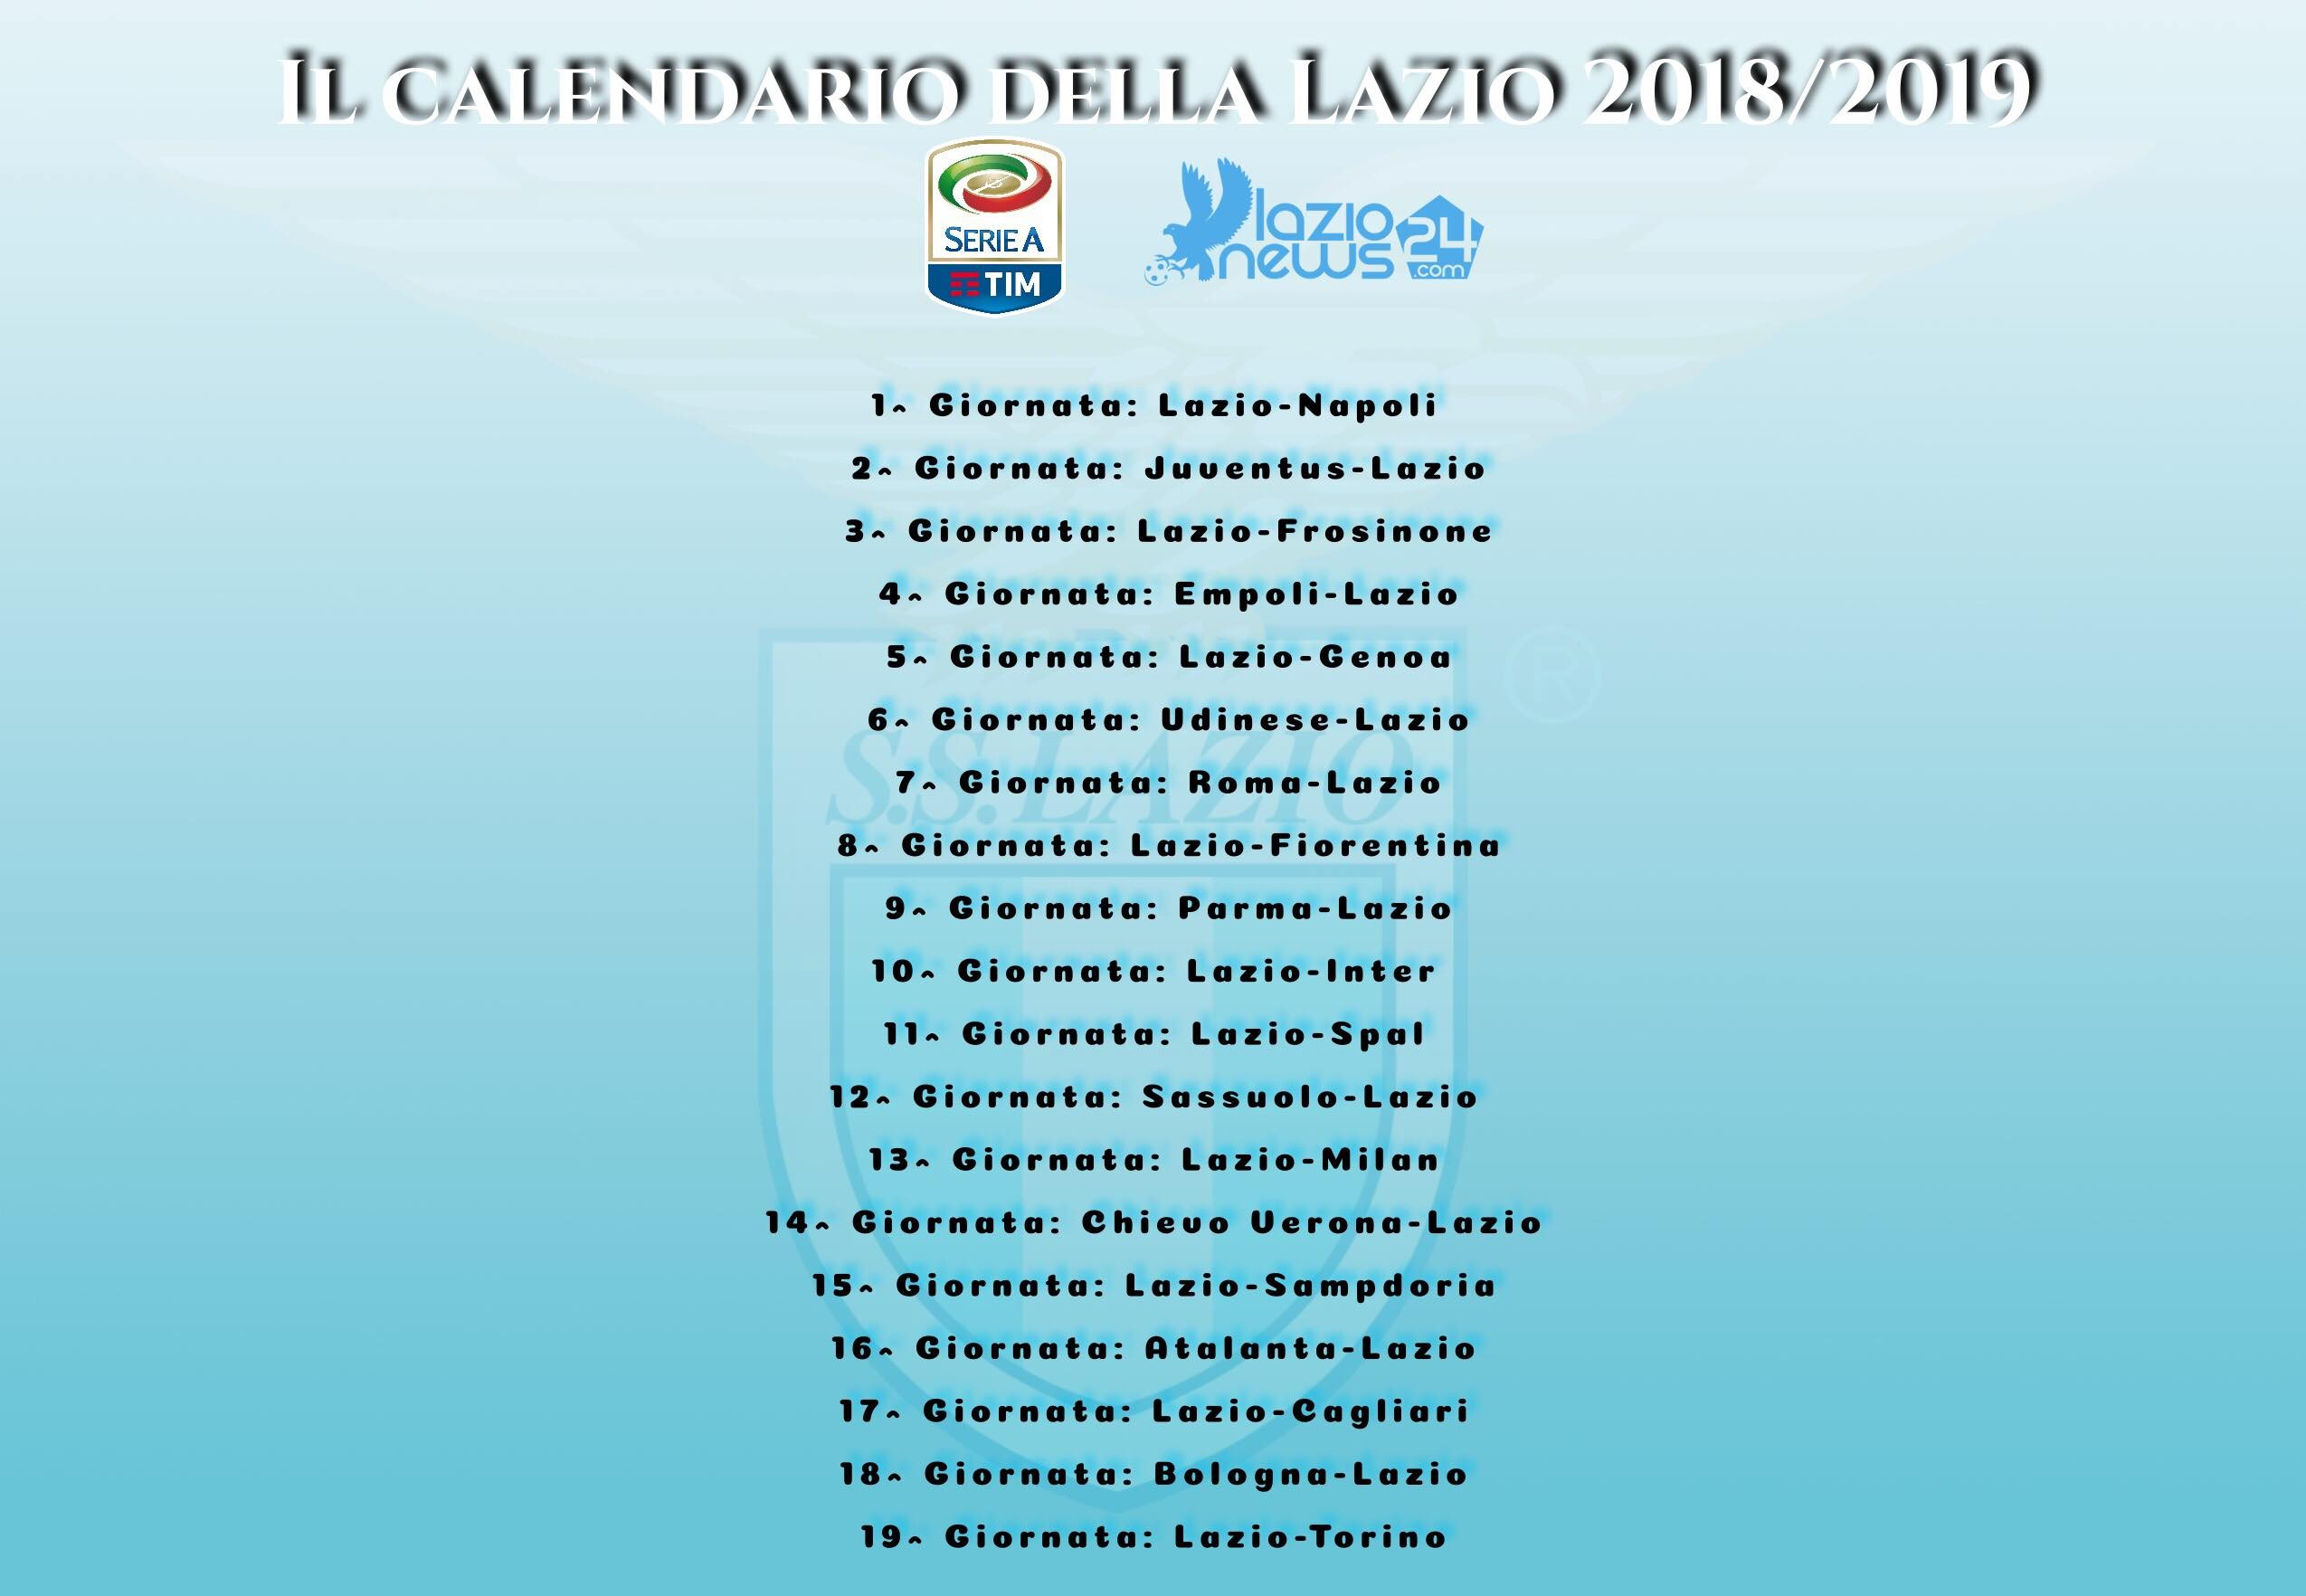 Calendario 2019 Inter Más Recientemente Liberado sorteggio Calendario Serie A 2018 2019 Lazio Napoli All Esordio Of Calendario 2019 Inter Más Recientemente Liberado sorteggio Calendario Serie A 2018 2019 Lazio Napoli All Esordio